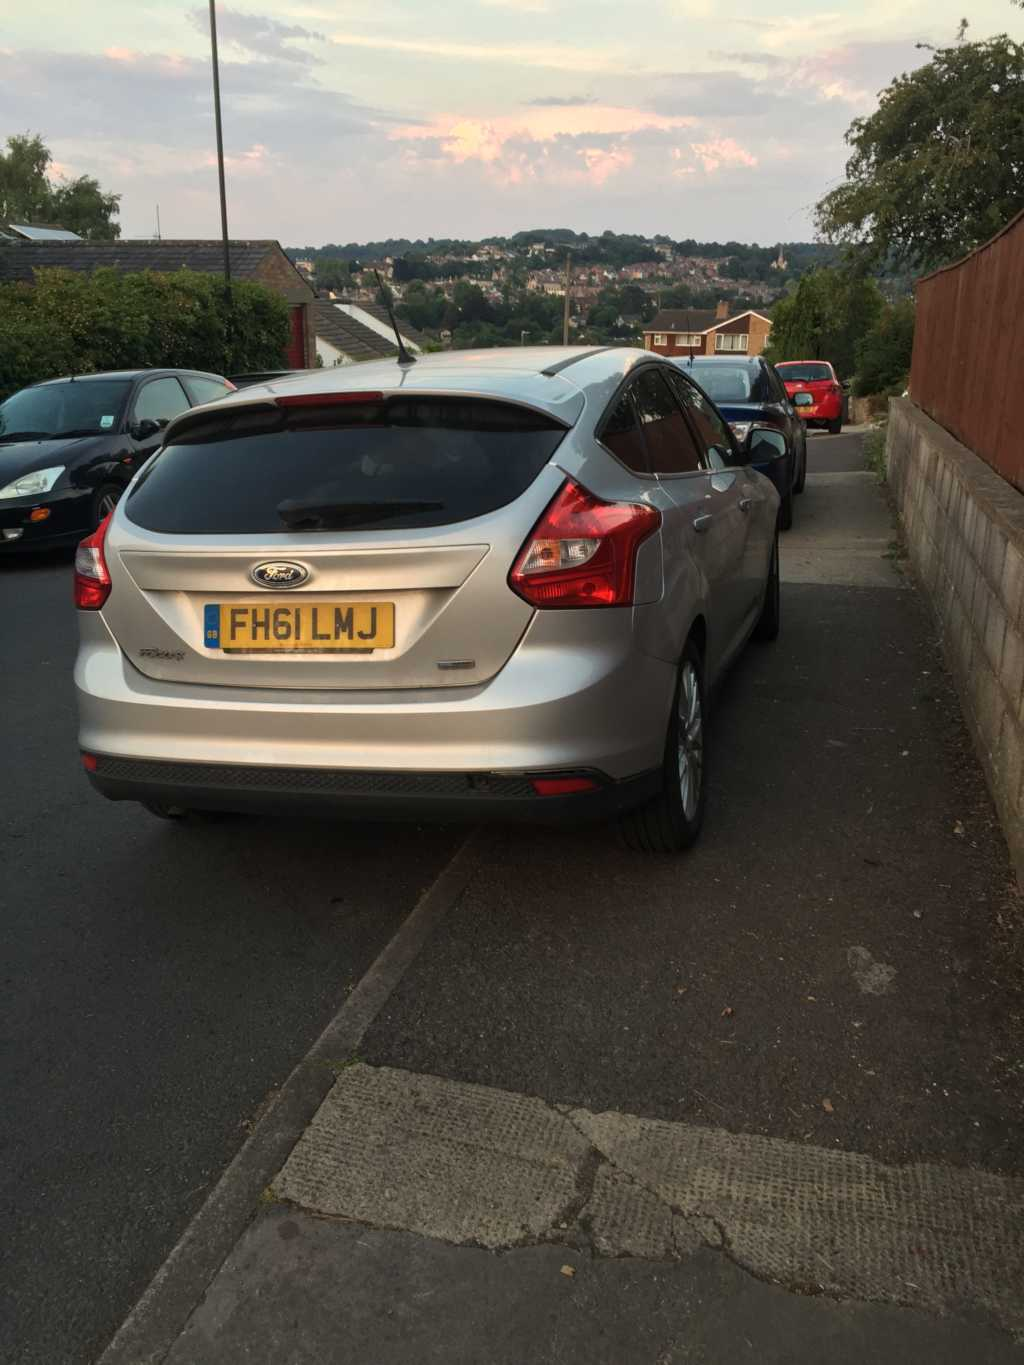 FH61LMJ is an Inconsiderate Parker